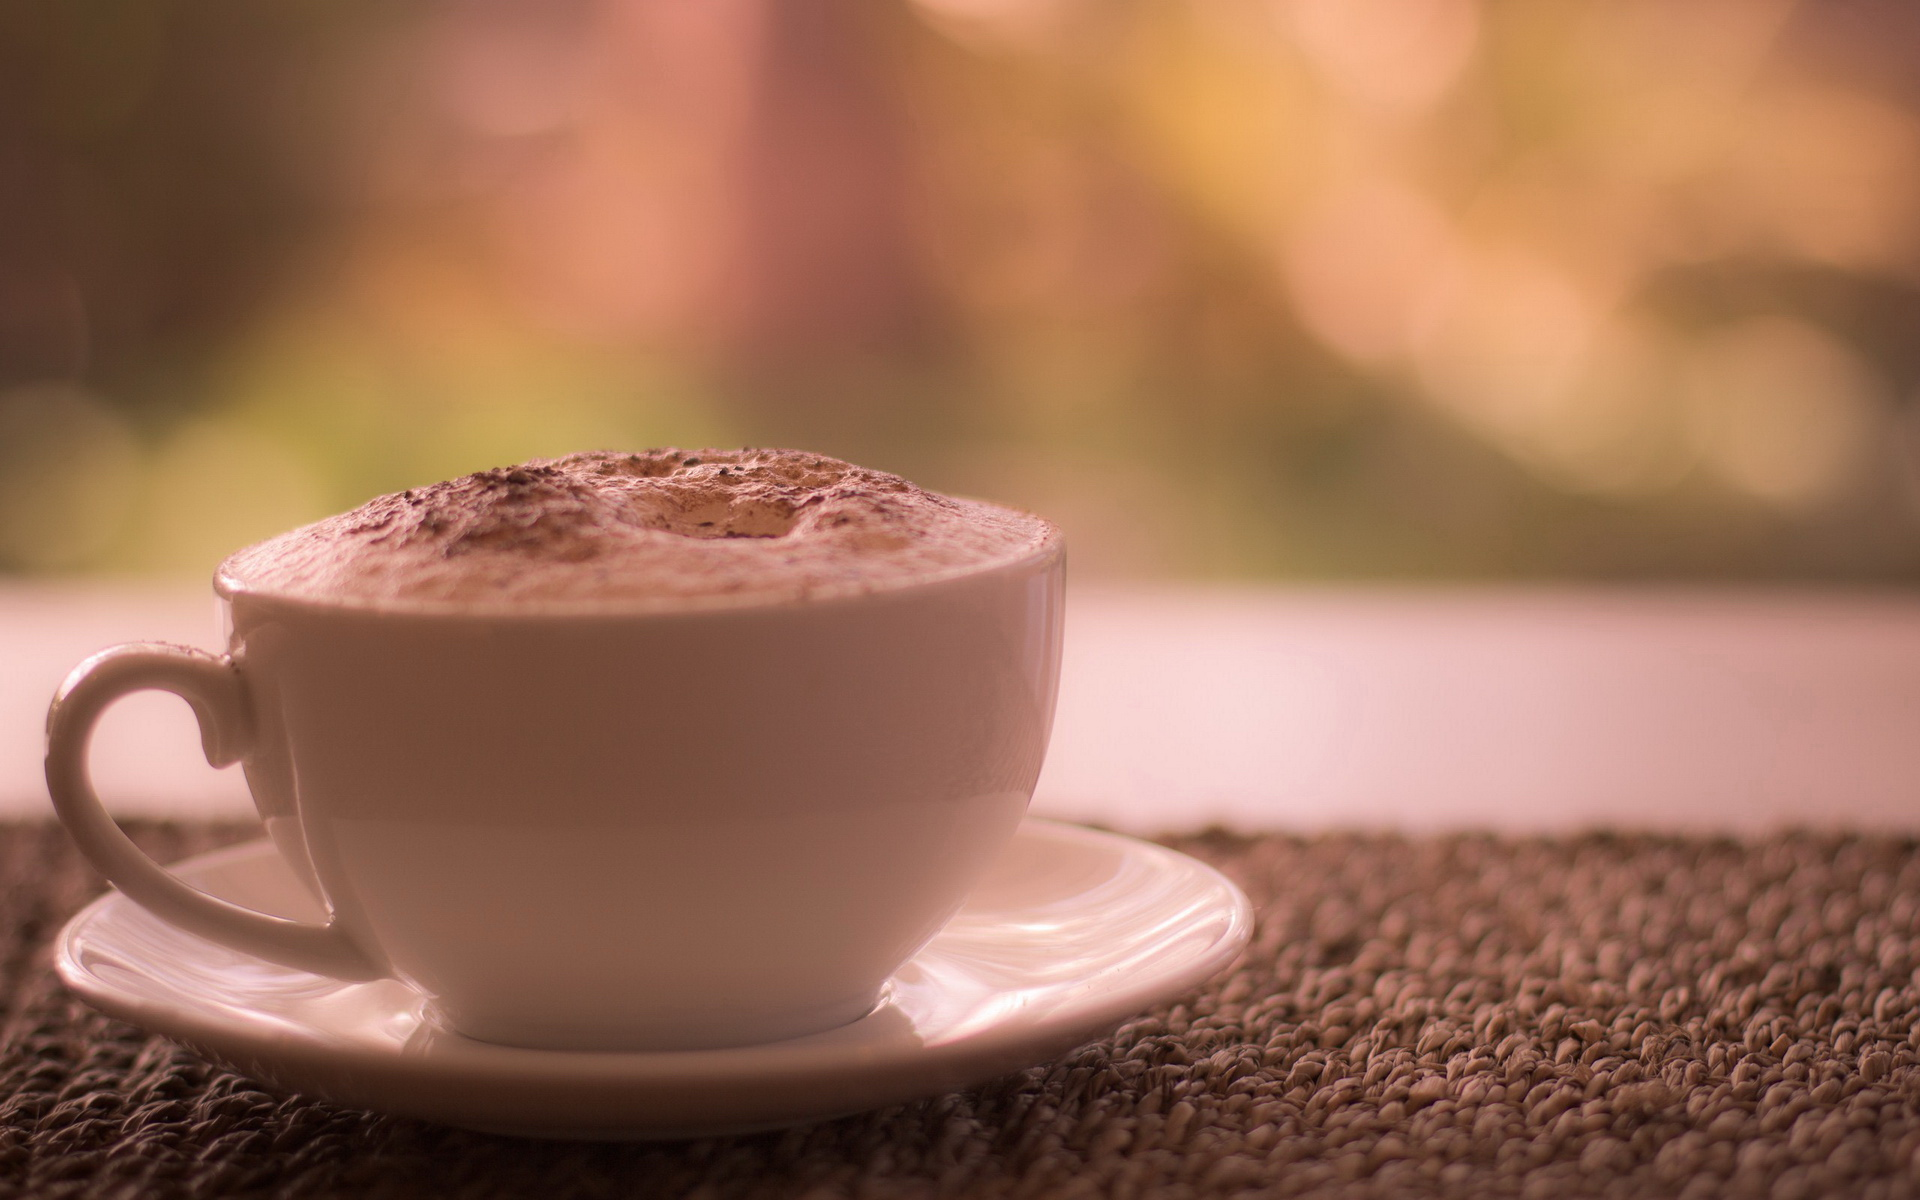 Lovely Cappuccino Wallpaper 38664 1920x1200 px